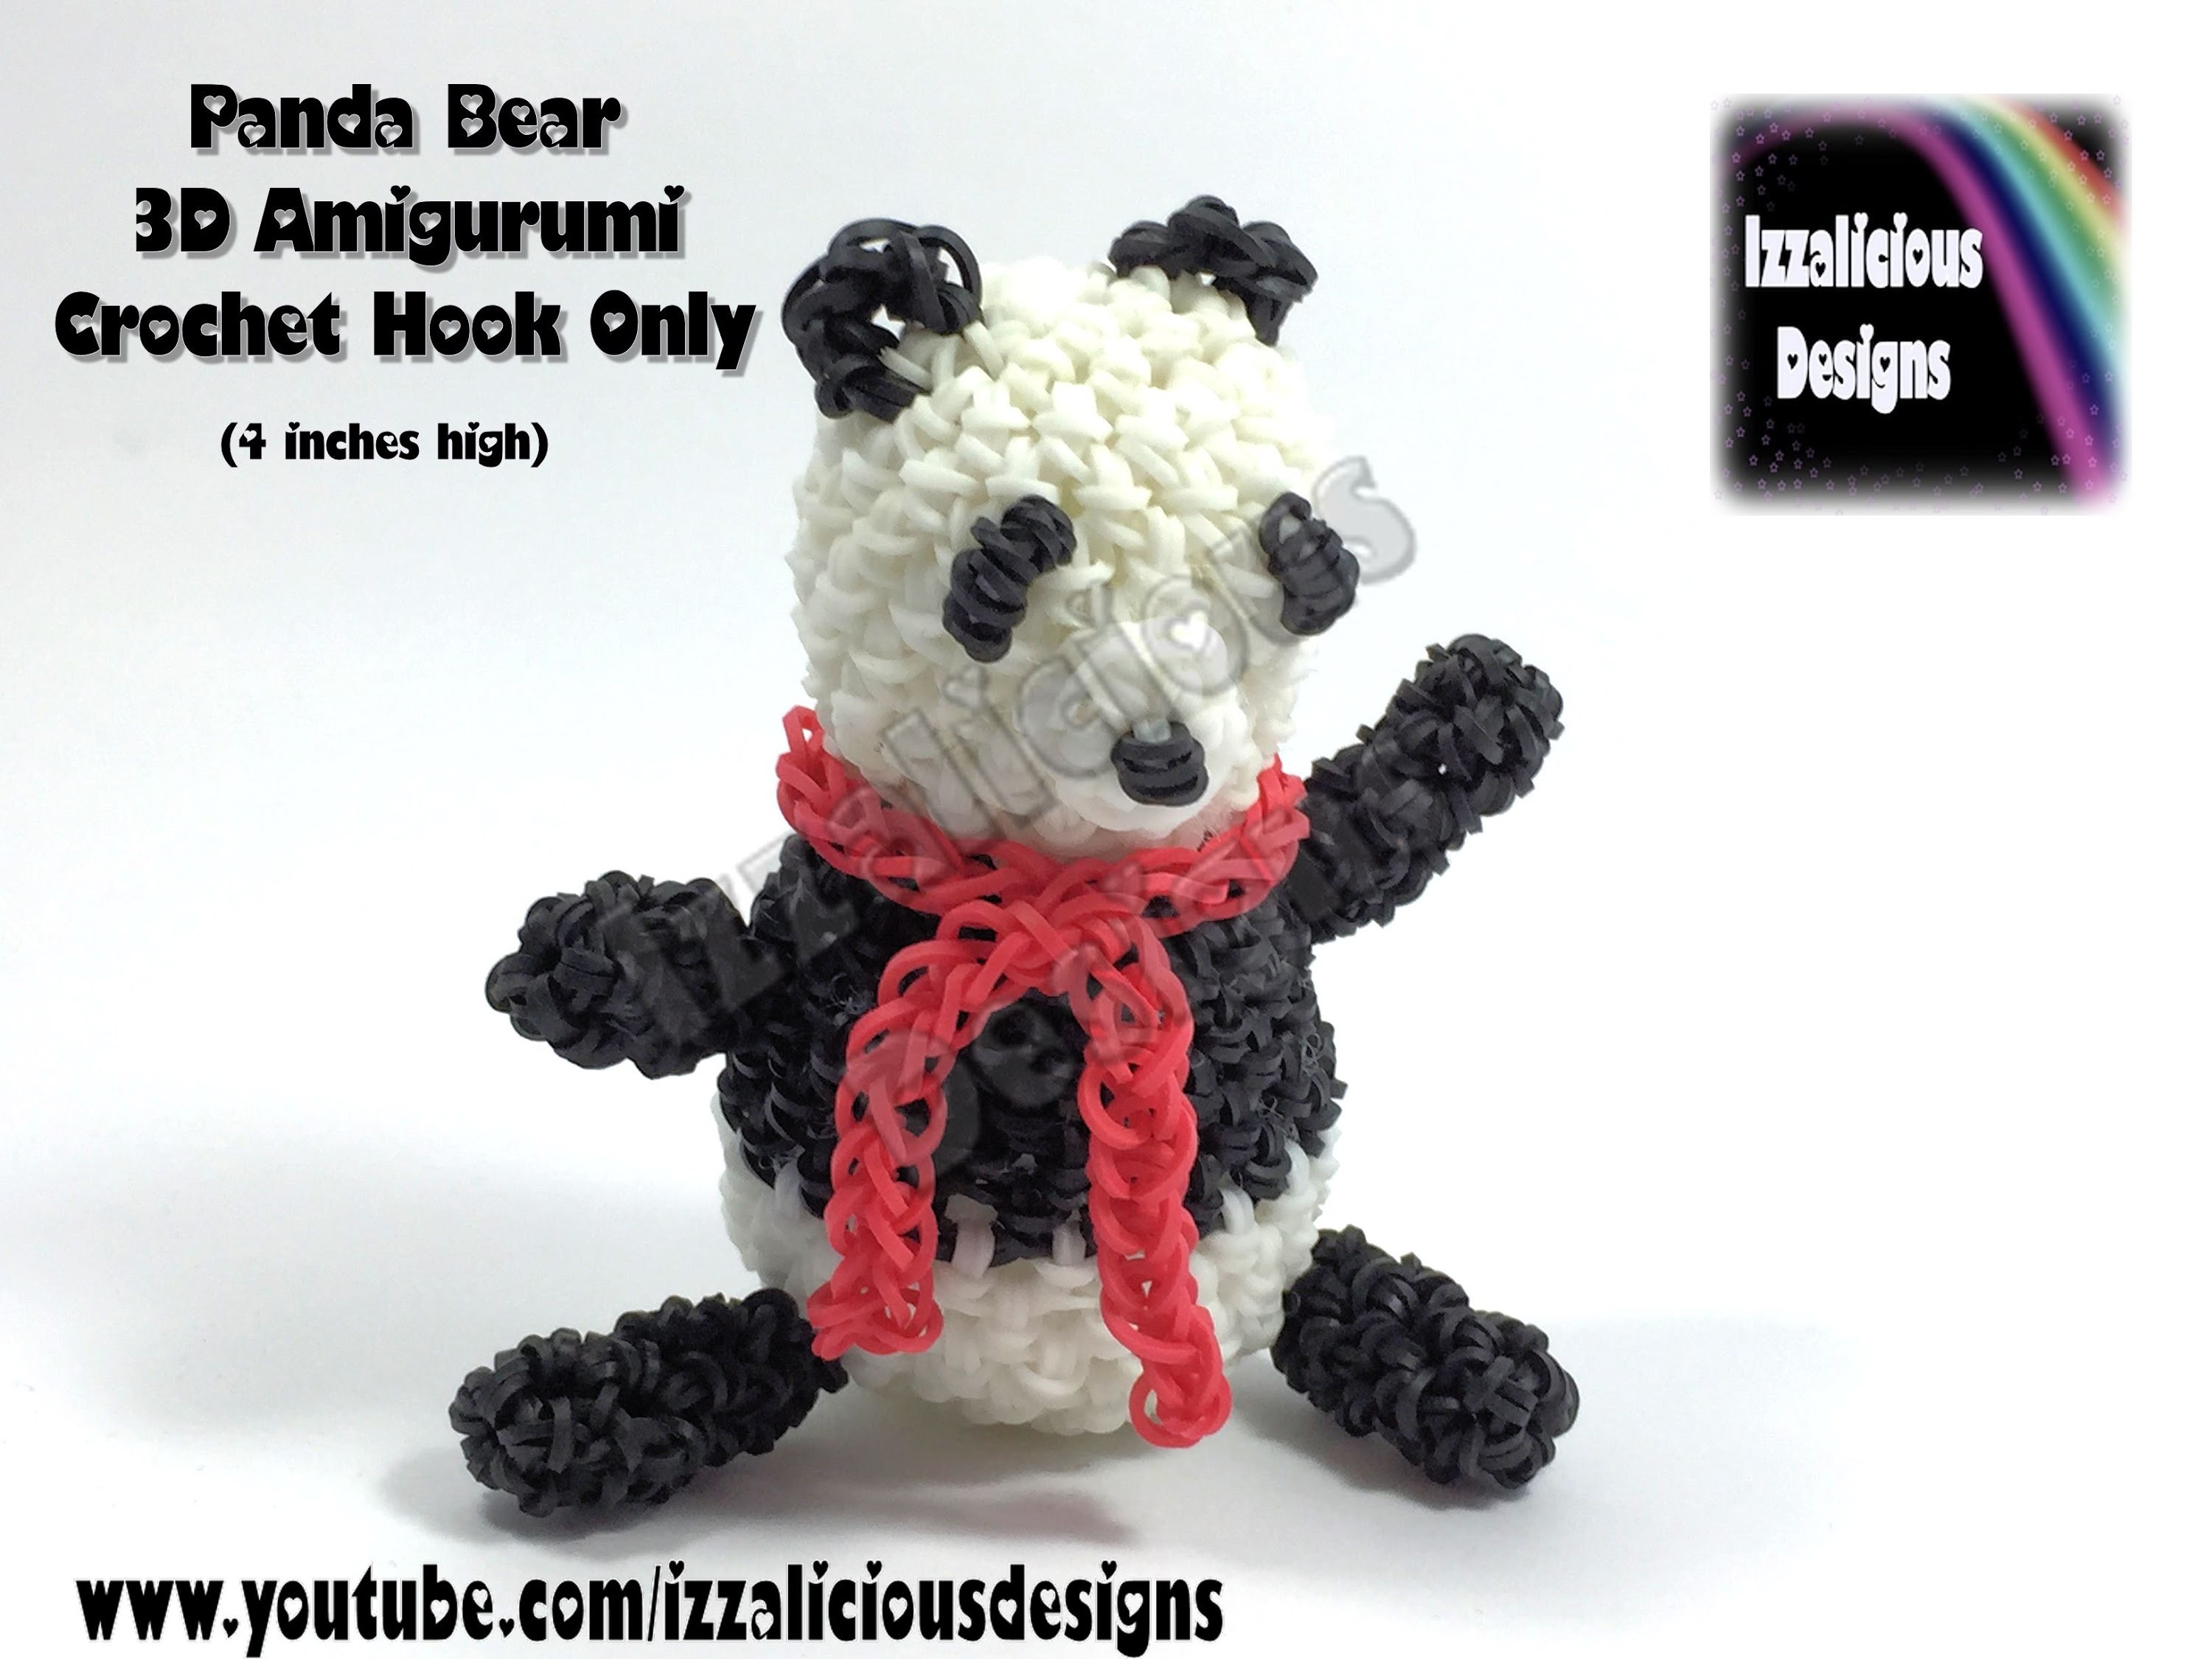 Rainbow Loom 3D Panda Bear Amigurumi.Loomigurumi Figure.Doll.Toy - Hook Only Loomless (Loom-less)